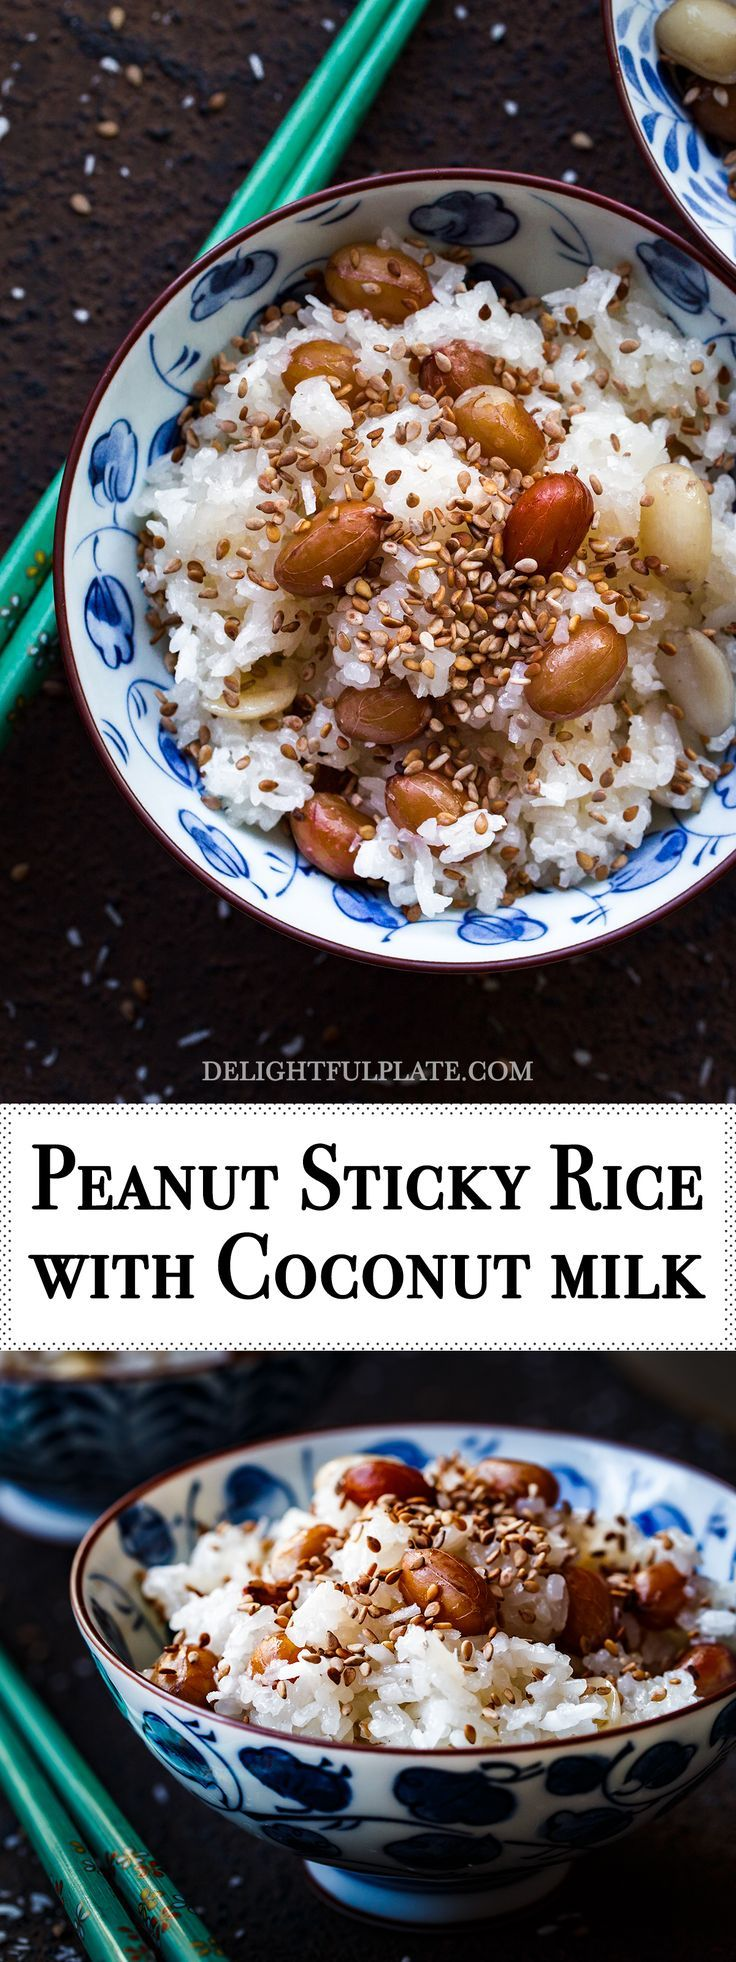 Vietnamese Peanut Sticky Rice (Xoi lac dua) features soft-chewy sticky rice, buttery boiled peanuts, creamy coconut milk and nutty toasted sesame seeds. It is a delicious and satisfying breakfast. #vietnamese #rice #breakfast